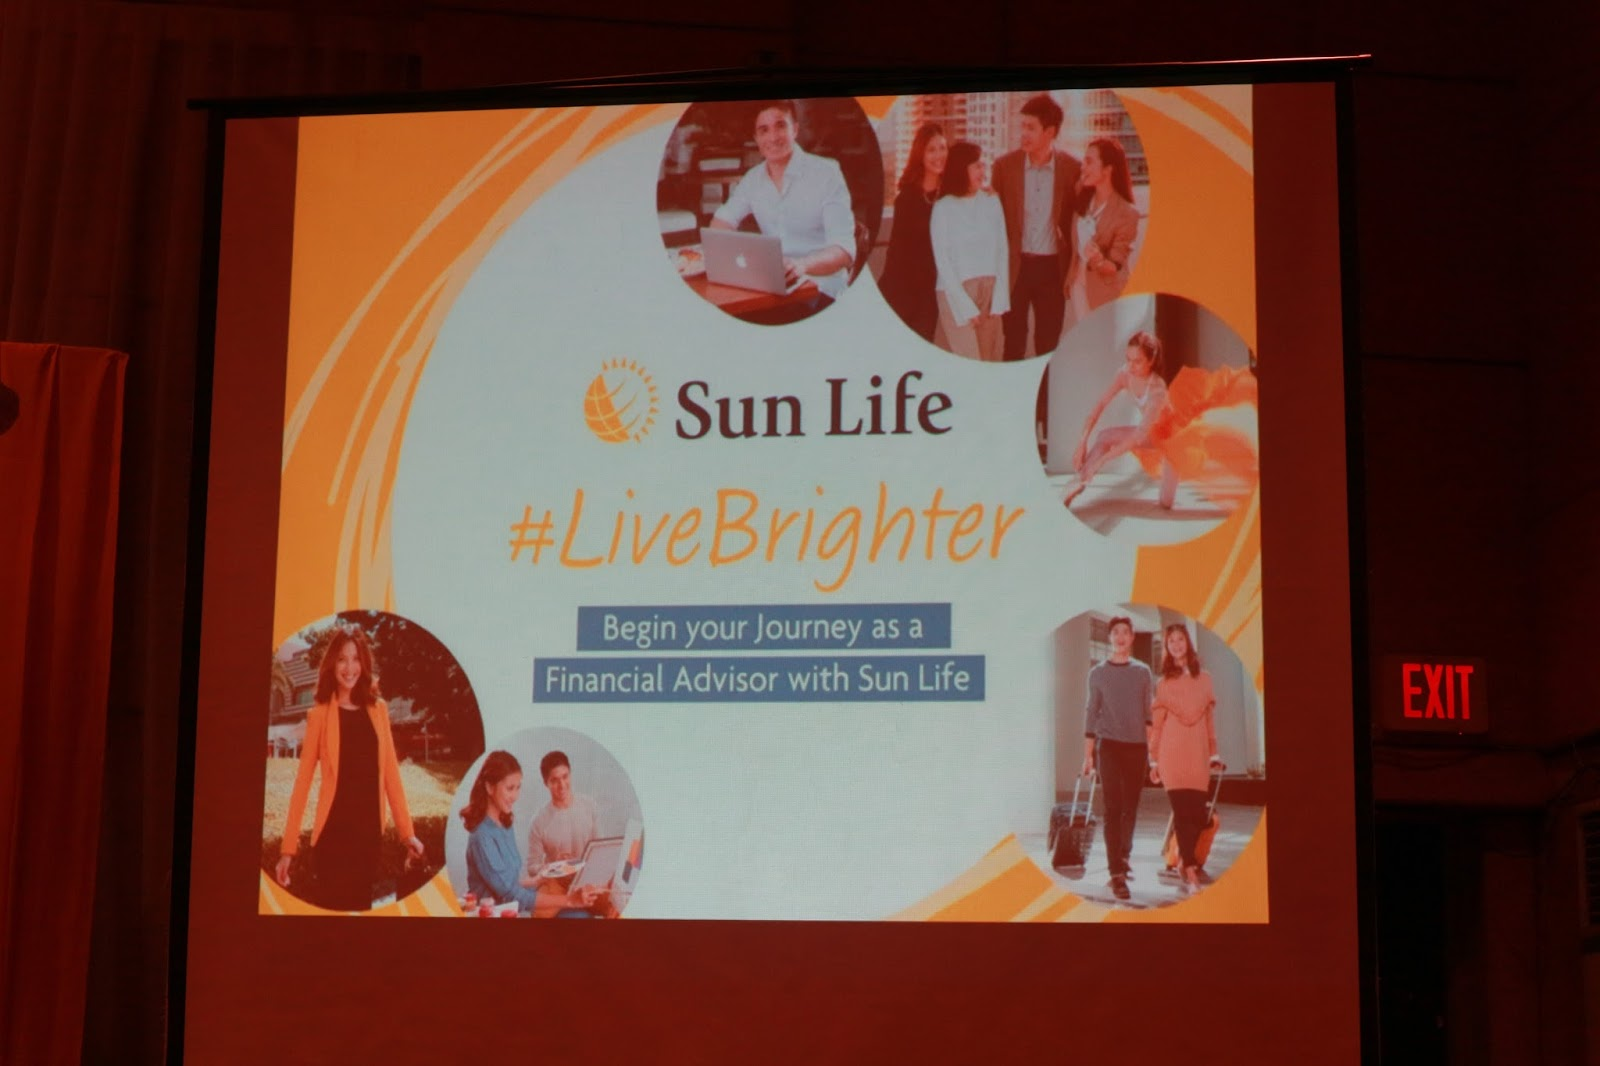 Live Brighter as a Sun Life Financial Advisor